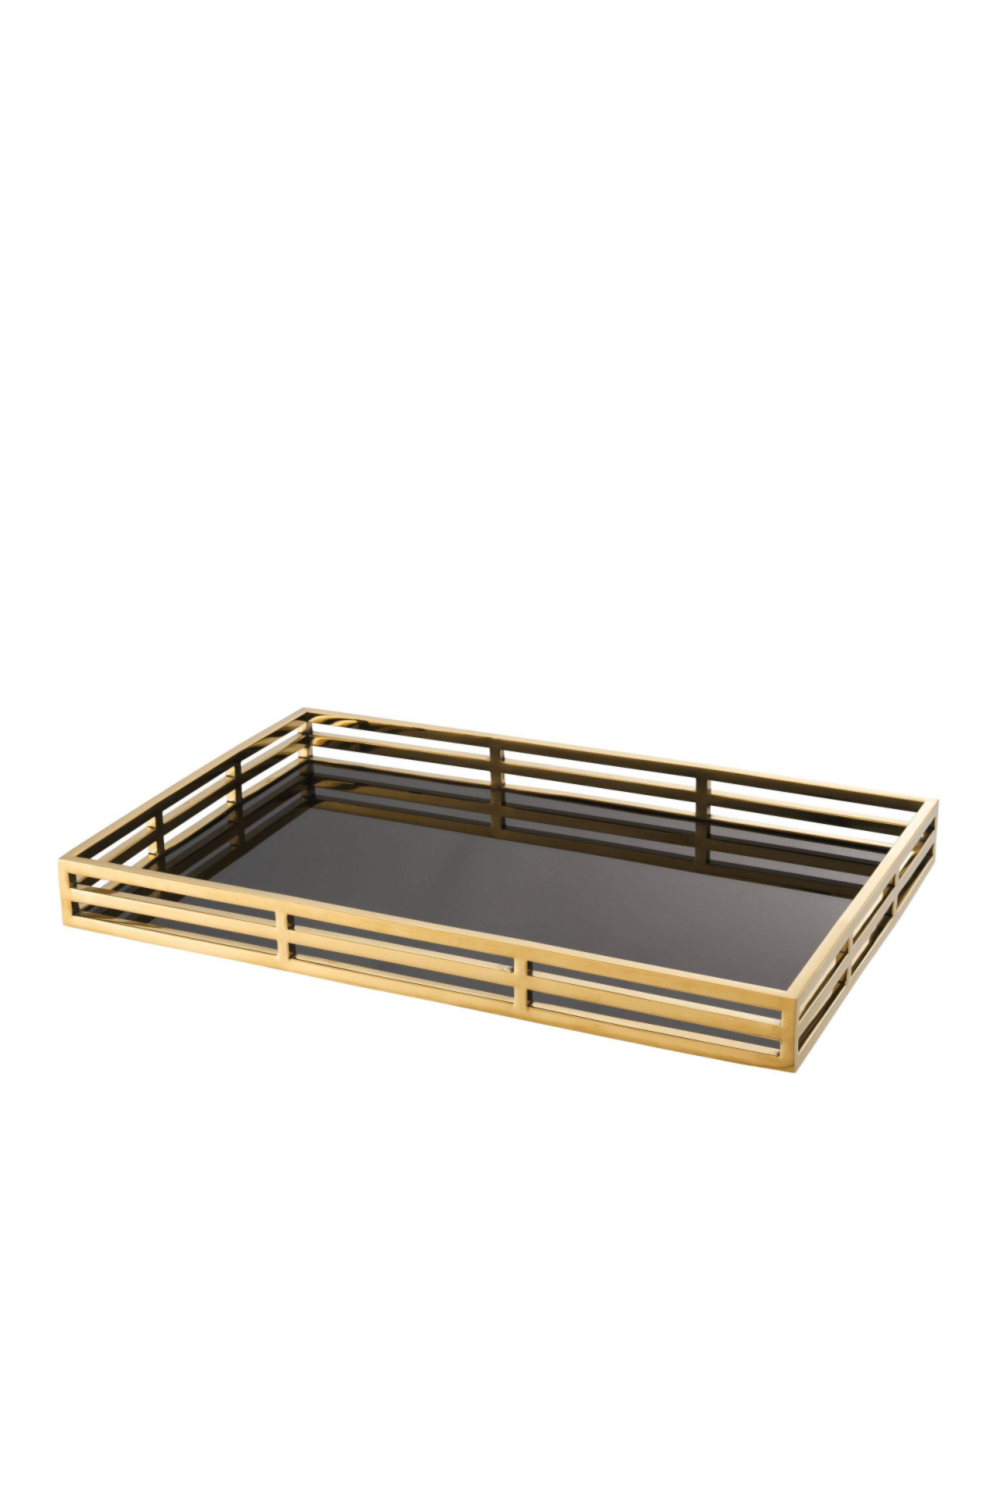 Black and Gold Serving Tray | Eichholtz Giacomo | OROA Luxury Decor